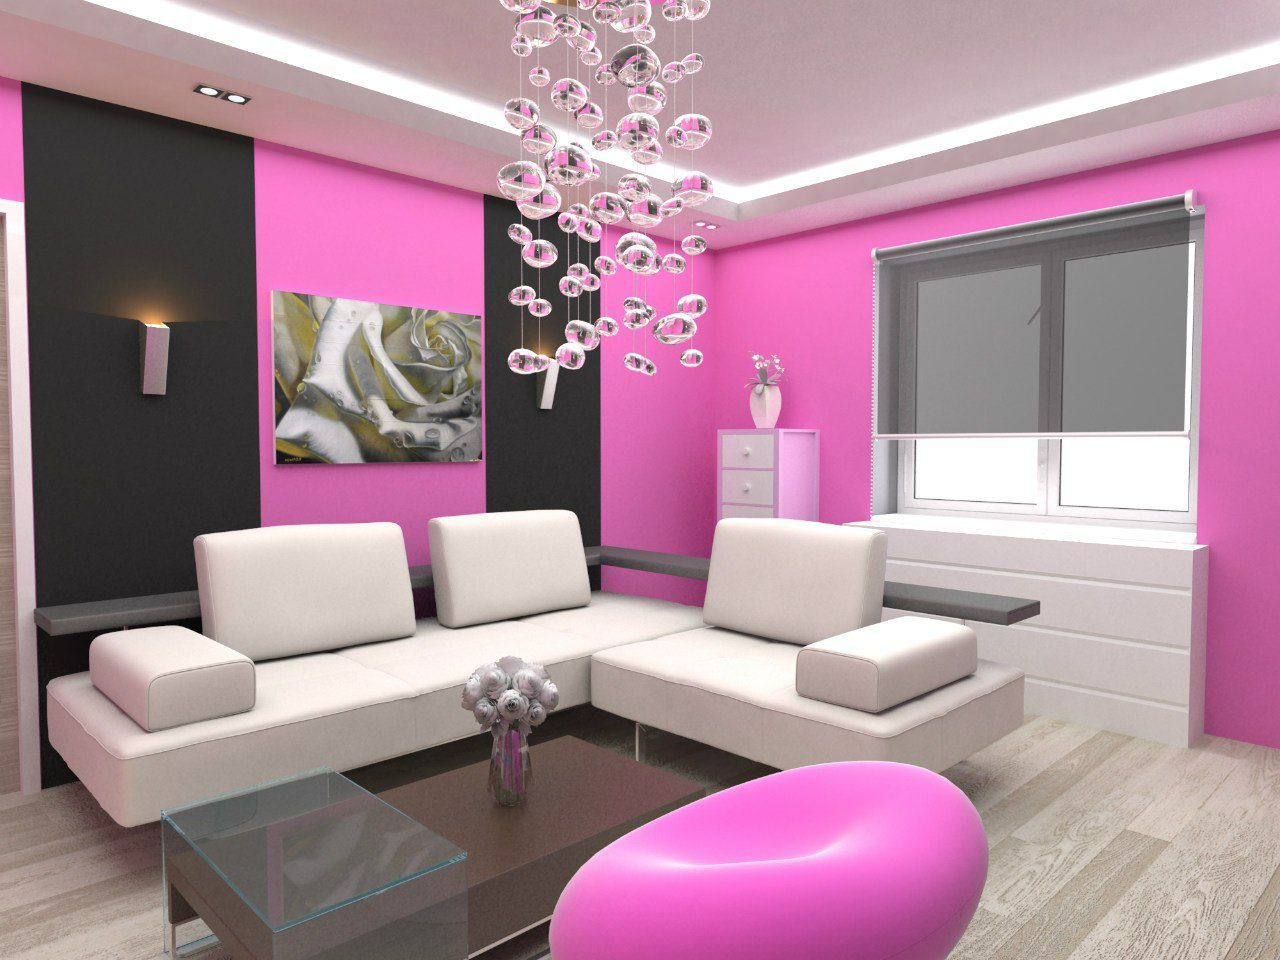 Pink Living Room Set Pretty Living Room Paint Idea With Pink And Black Painted Wall And